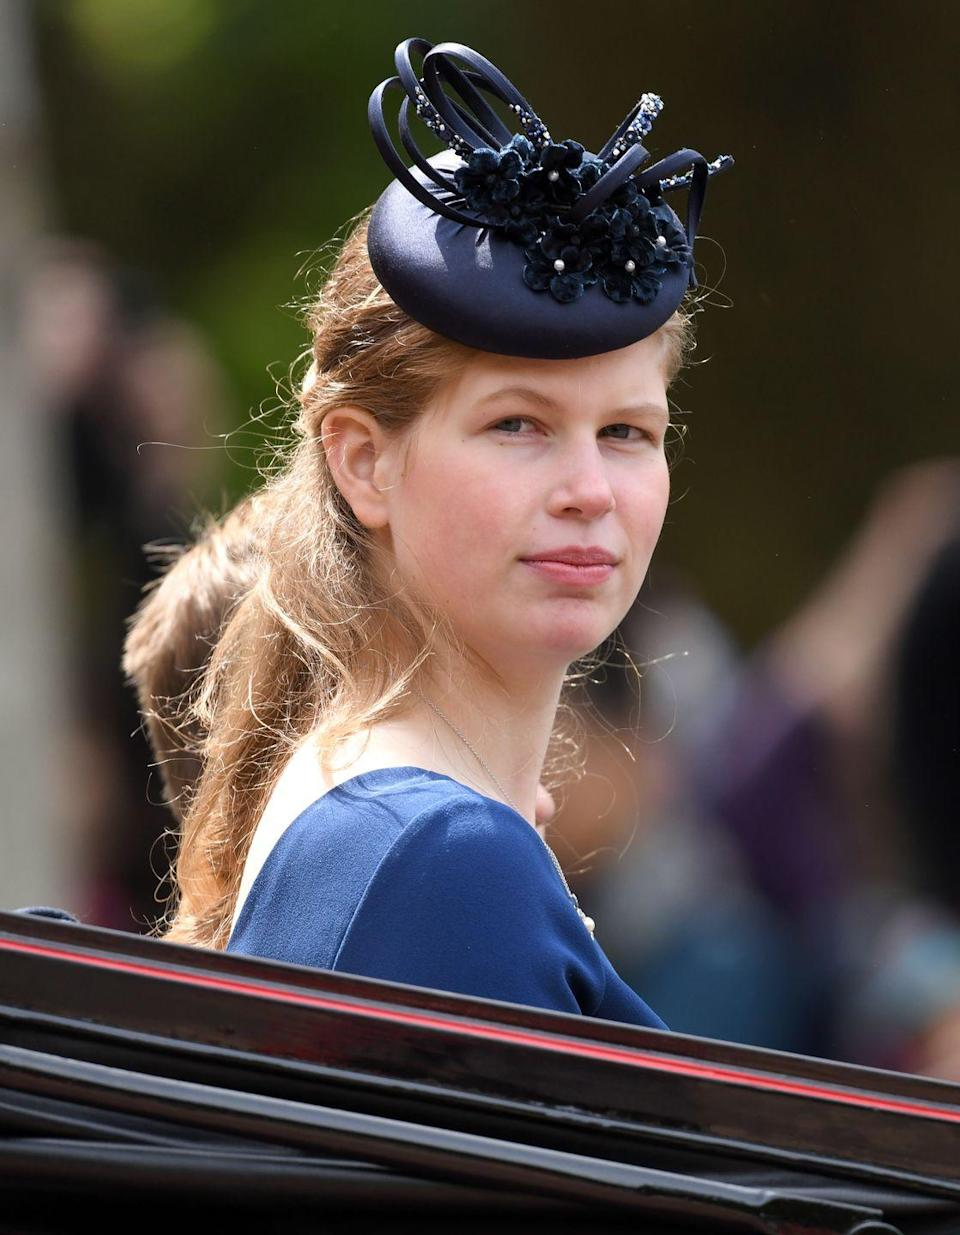 "<p><strong>Branch of the Family Tree: </strong>Daughter and oldest child of Prince Edward; granddaughter of Queen Elizabeth II</p><p><strong>More: </strong><a href=""https://www.townandcountrymag.com/society/tradition/a14501238/lady-louise-windsor-facts/"" rel=""nofollow noopener"" target=""_blank"" data-ylk=""slk:Get to Know Lady Louise Here"" class=""link rapid-noclick-resp"">Get to Know Lady Louise Here</a></p>"